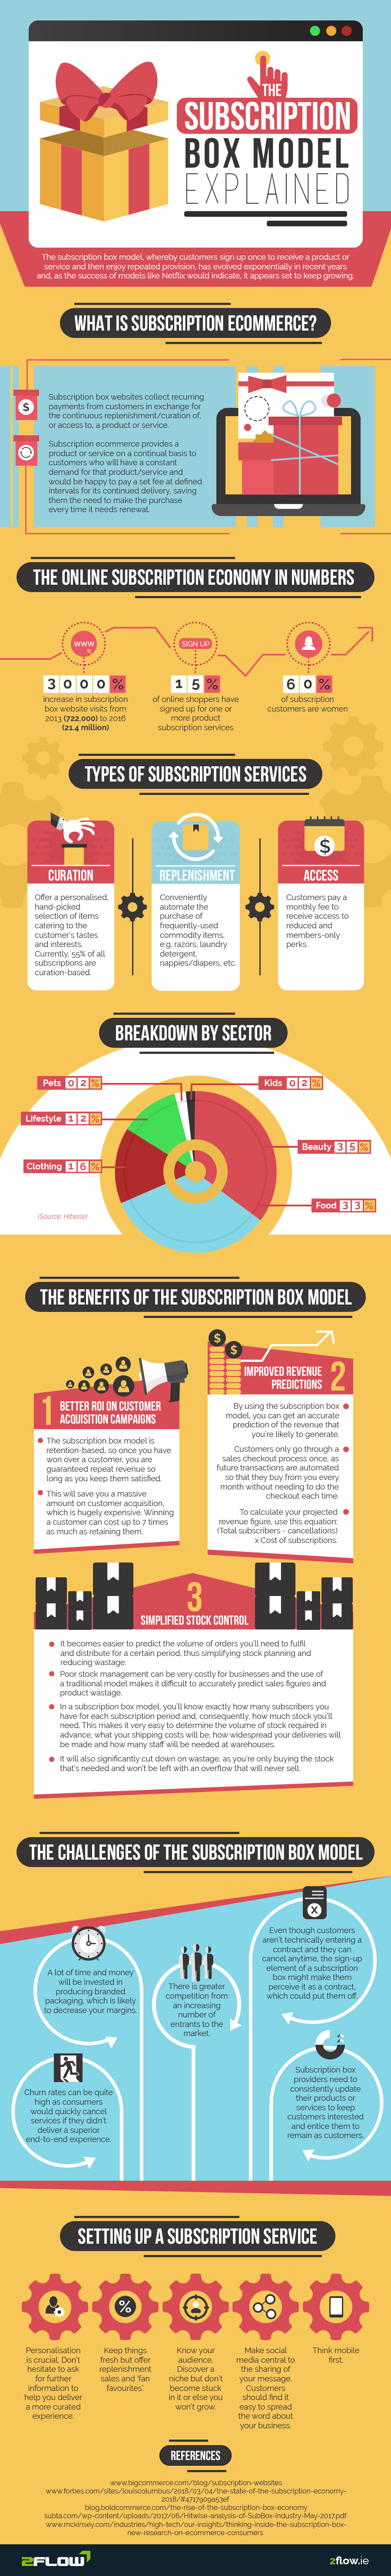 The Subscription Box Model Explained